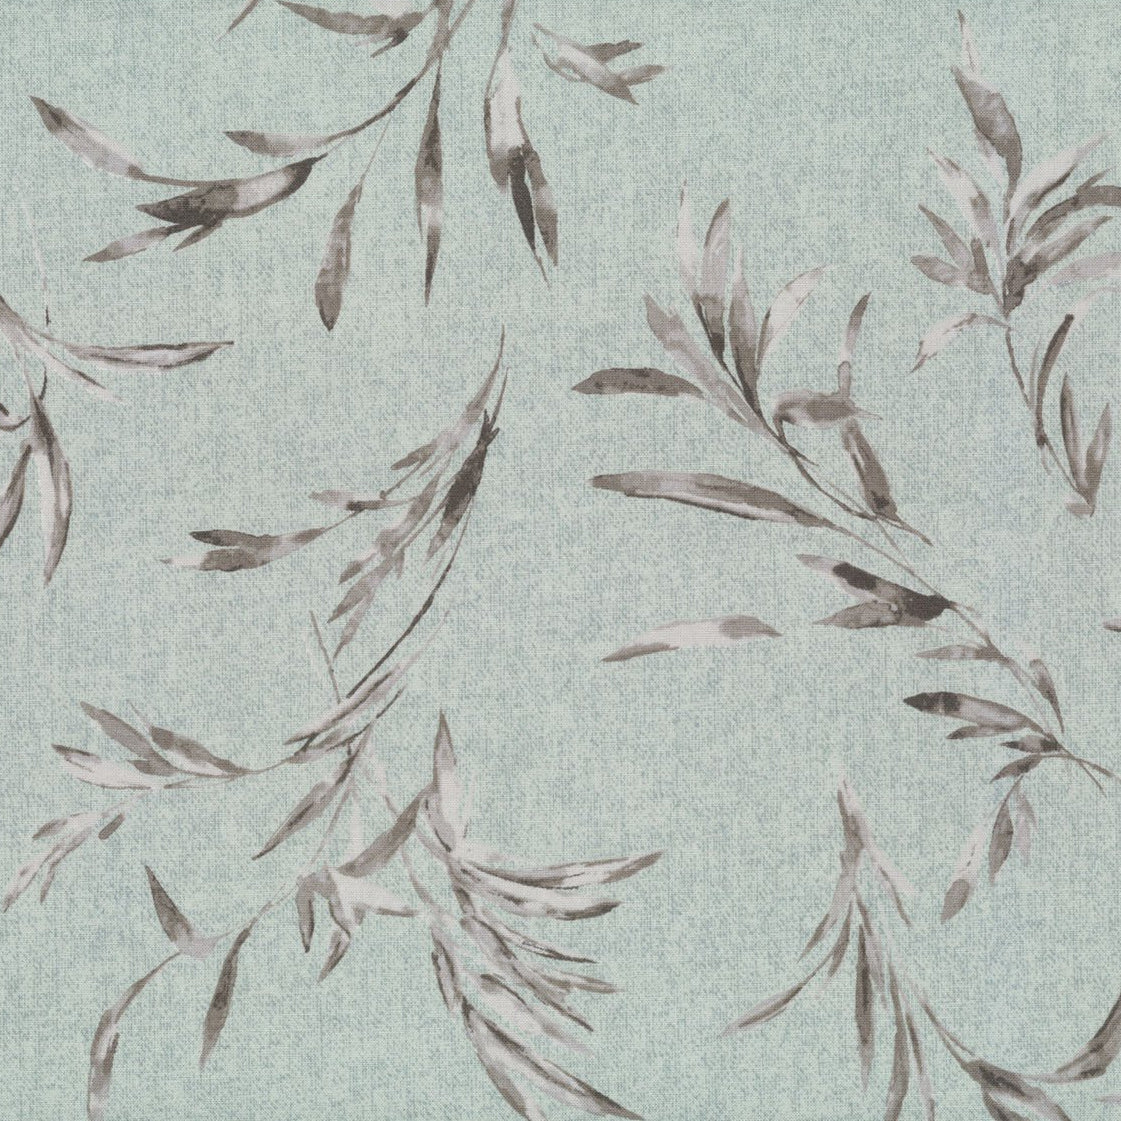 Centenary 24 - Leaves Fabric - Trapunto